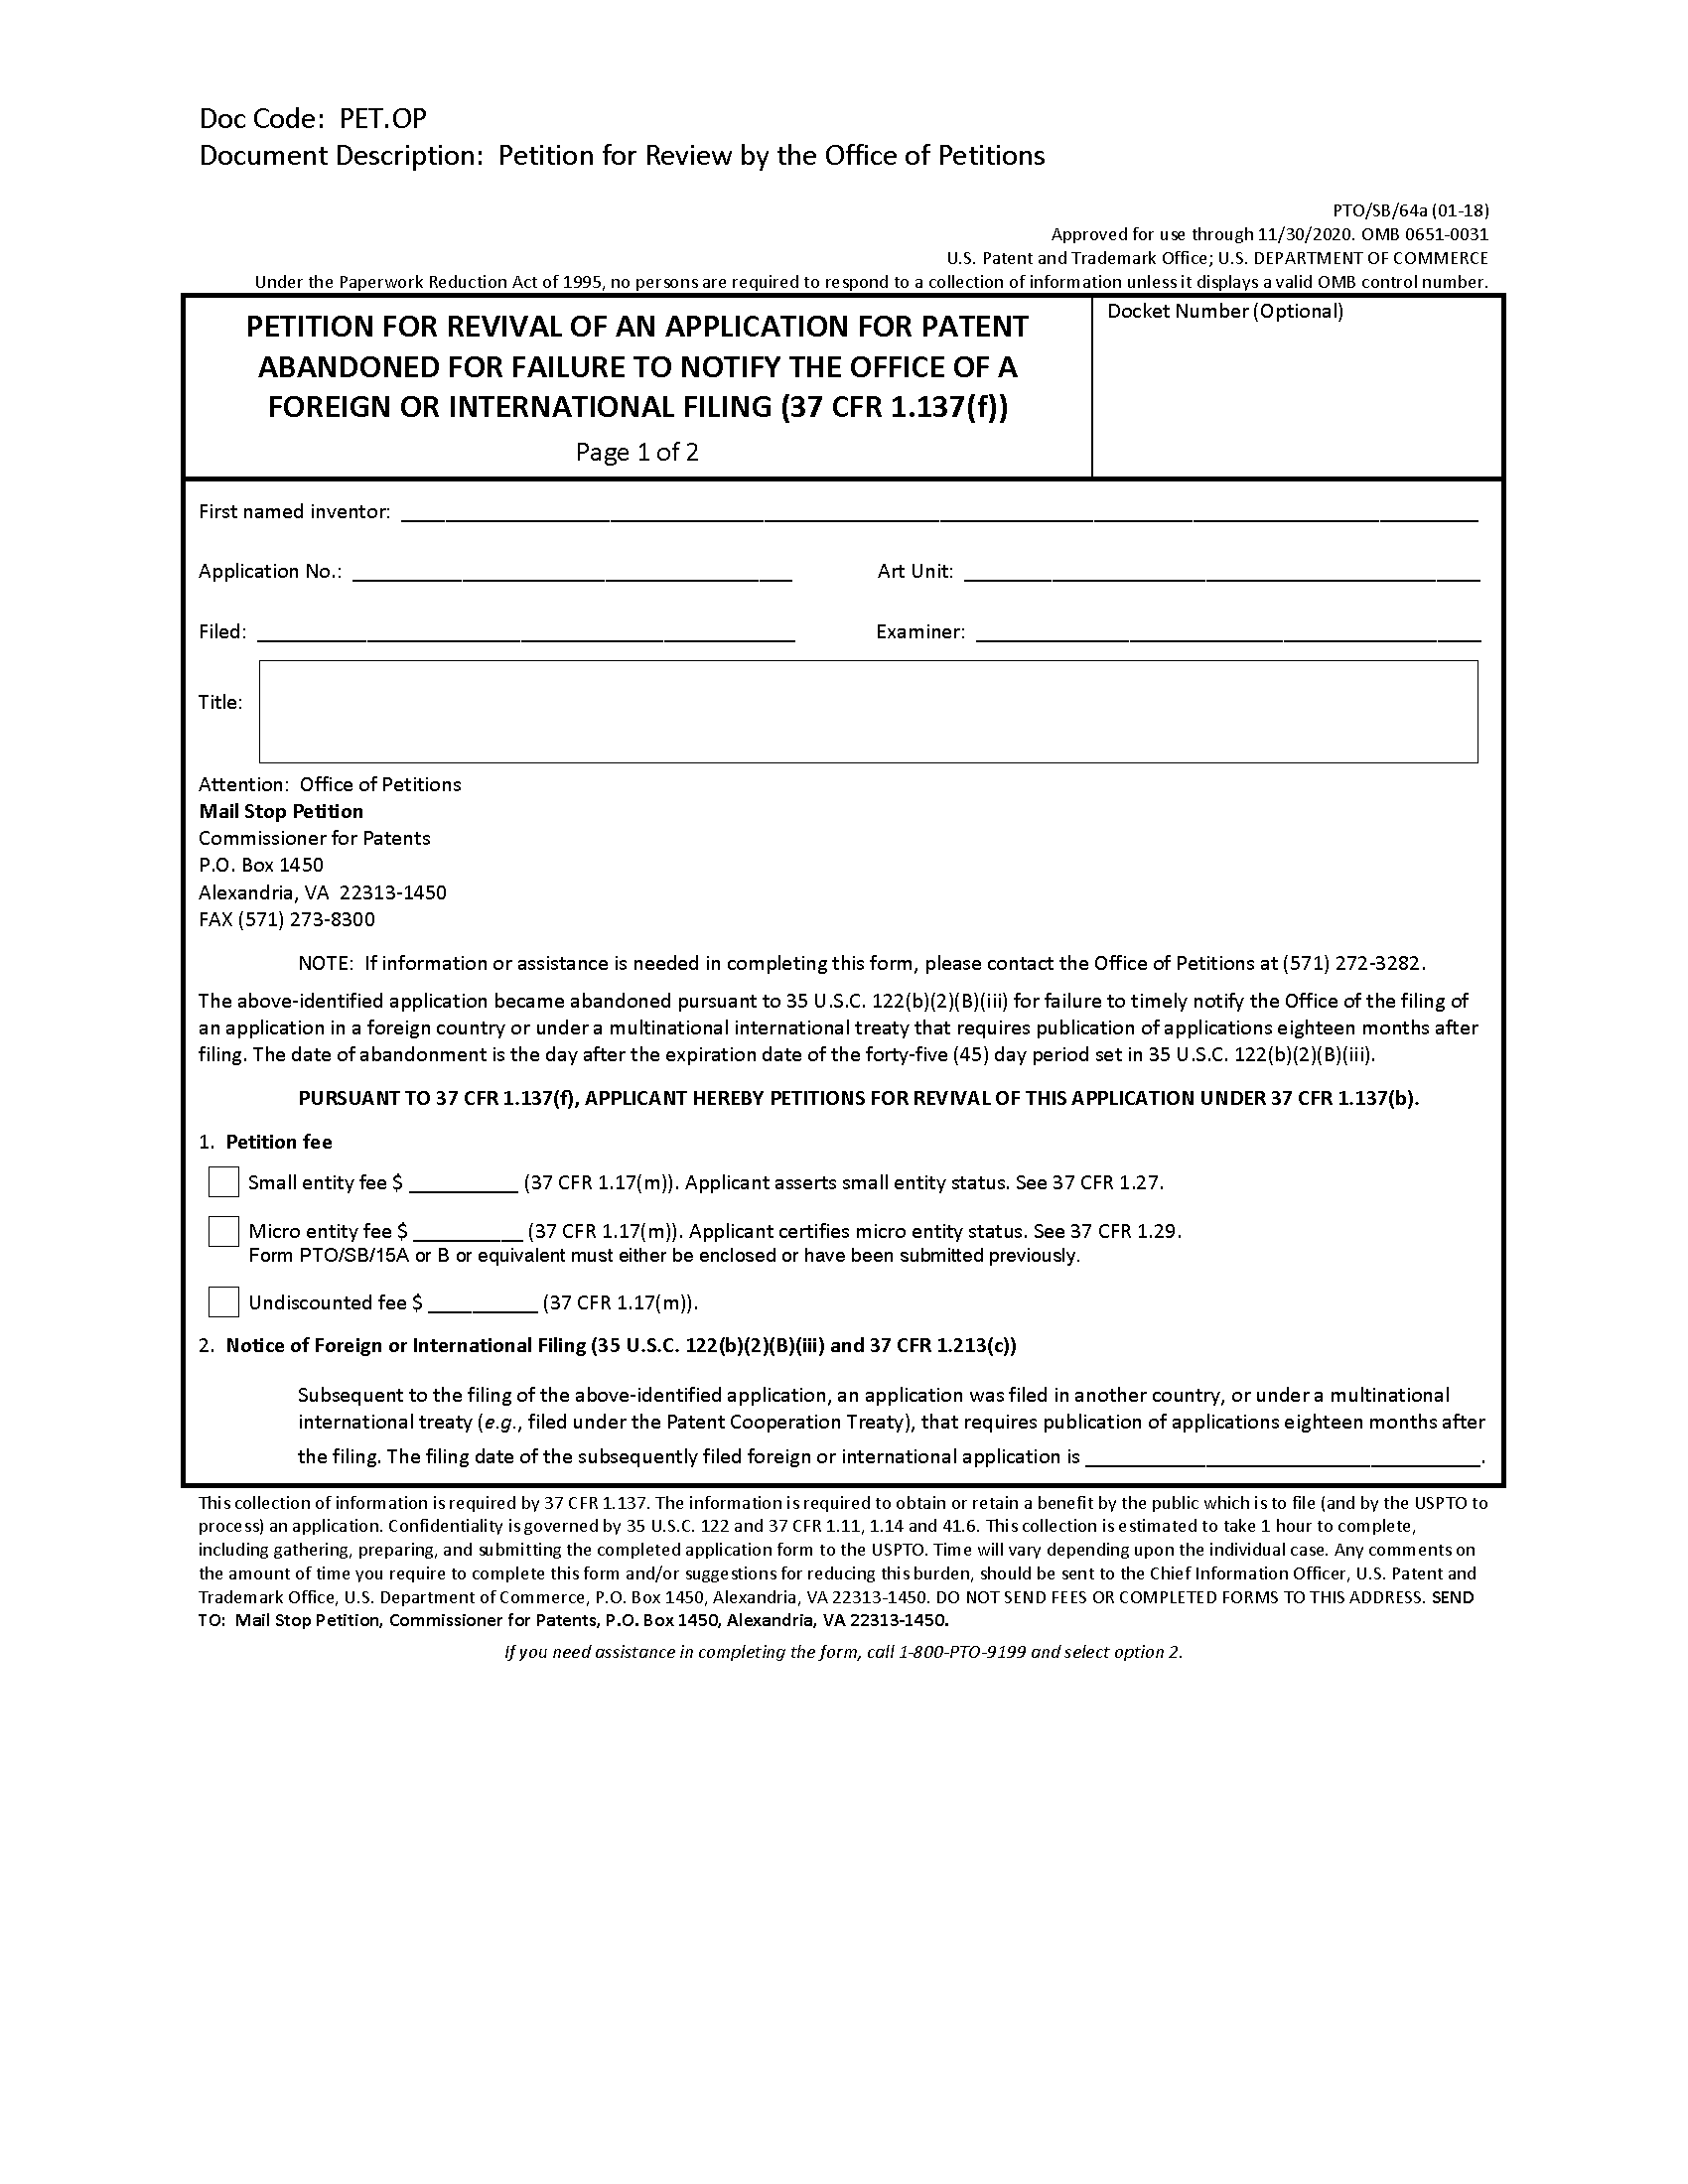 711-Abandonment of Patent Application on pa forms, rca forms, pca forms, dual forms,